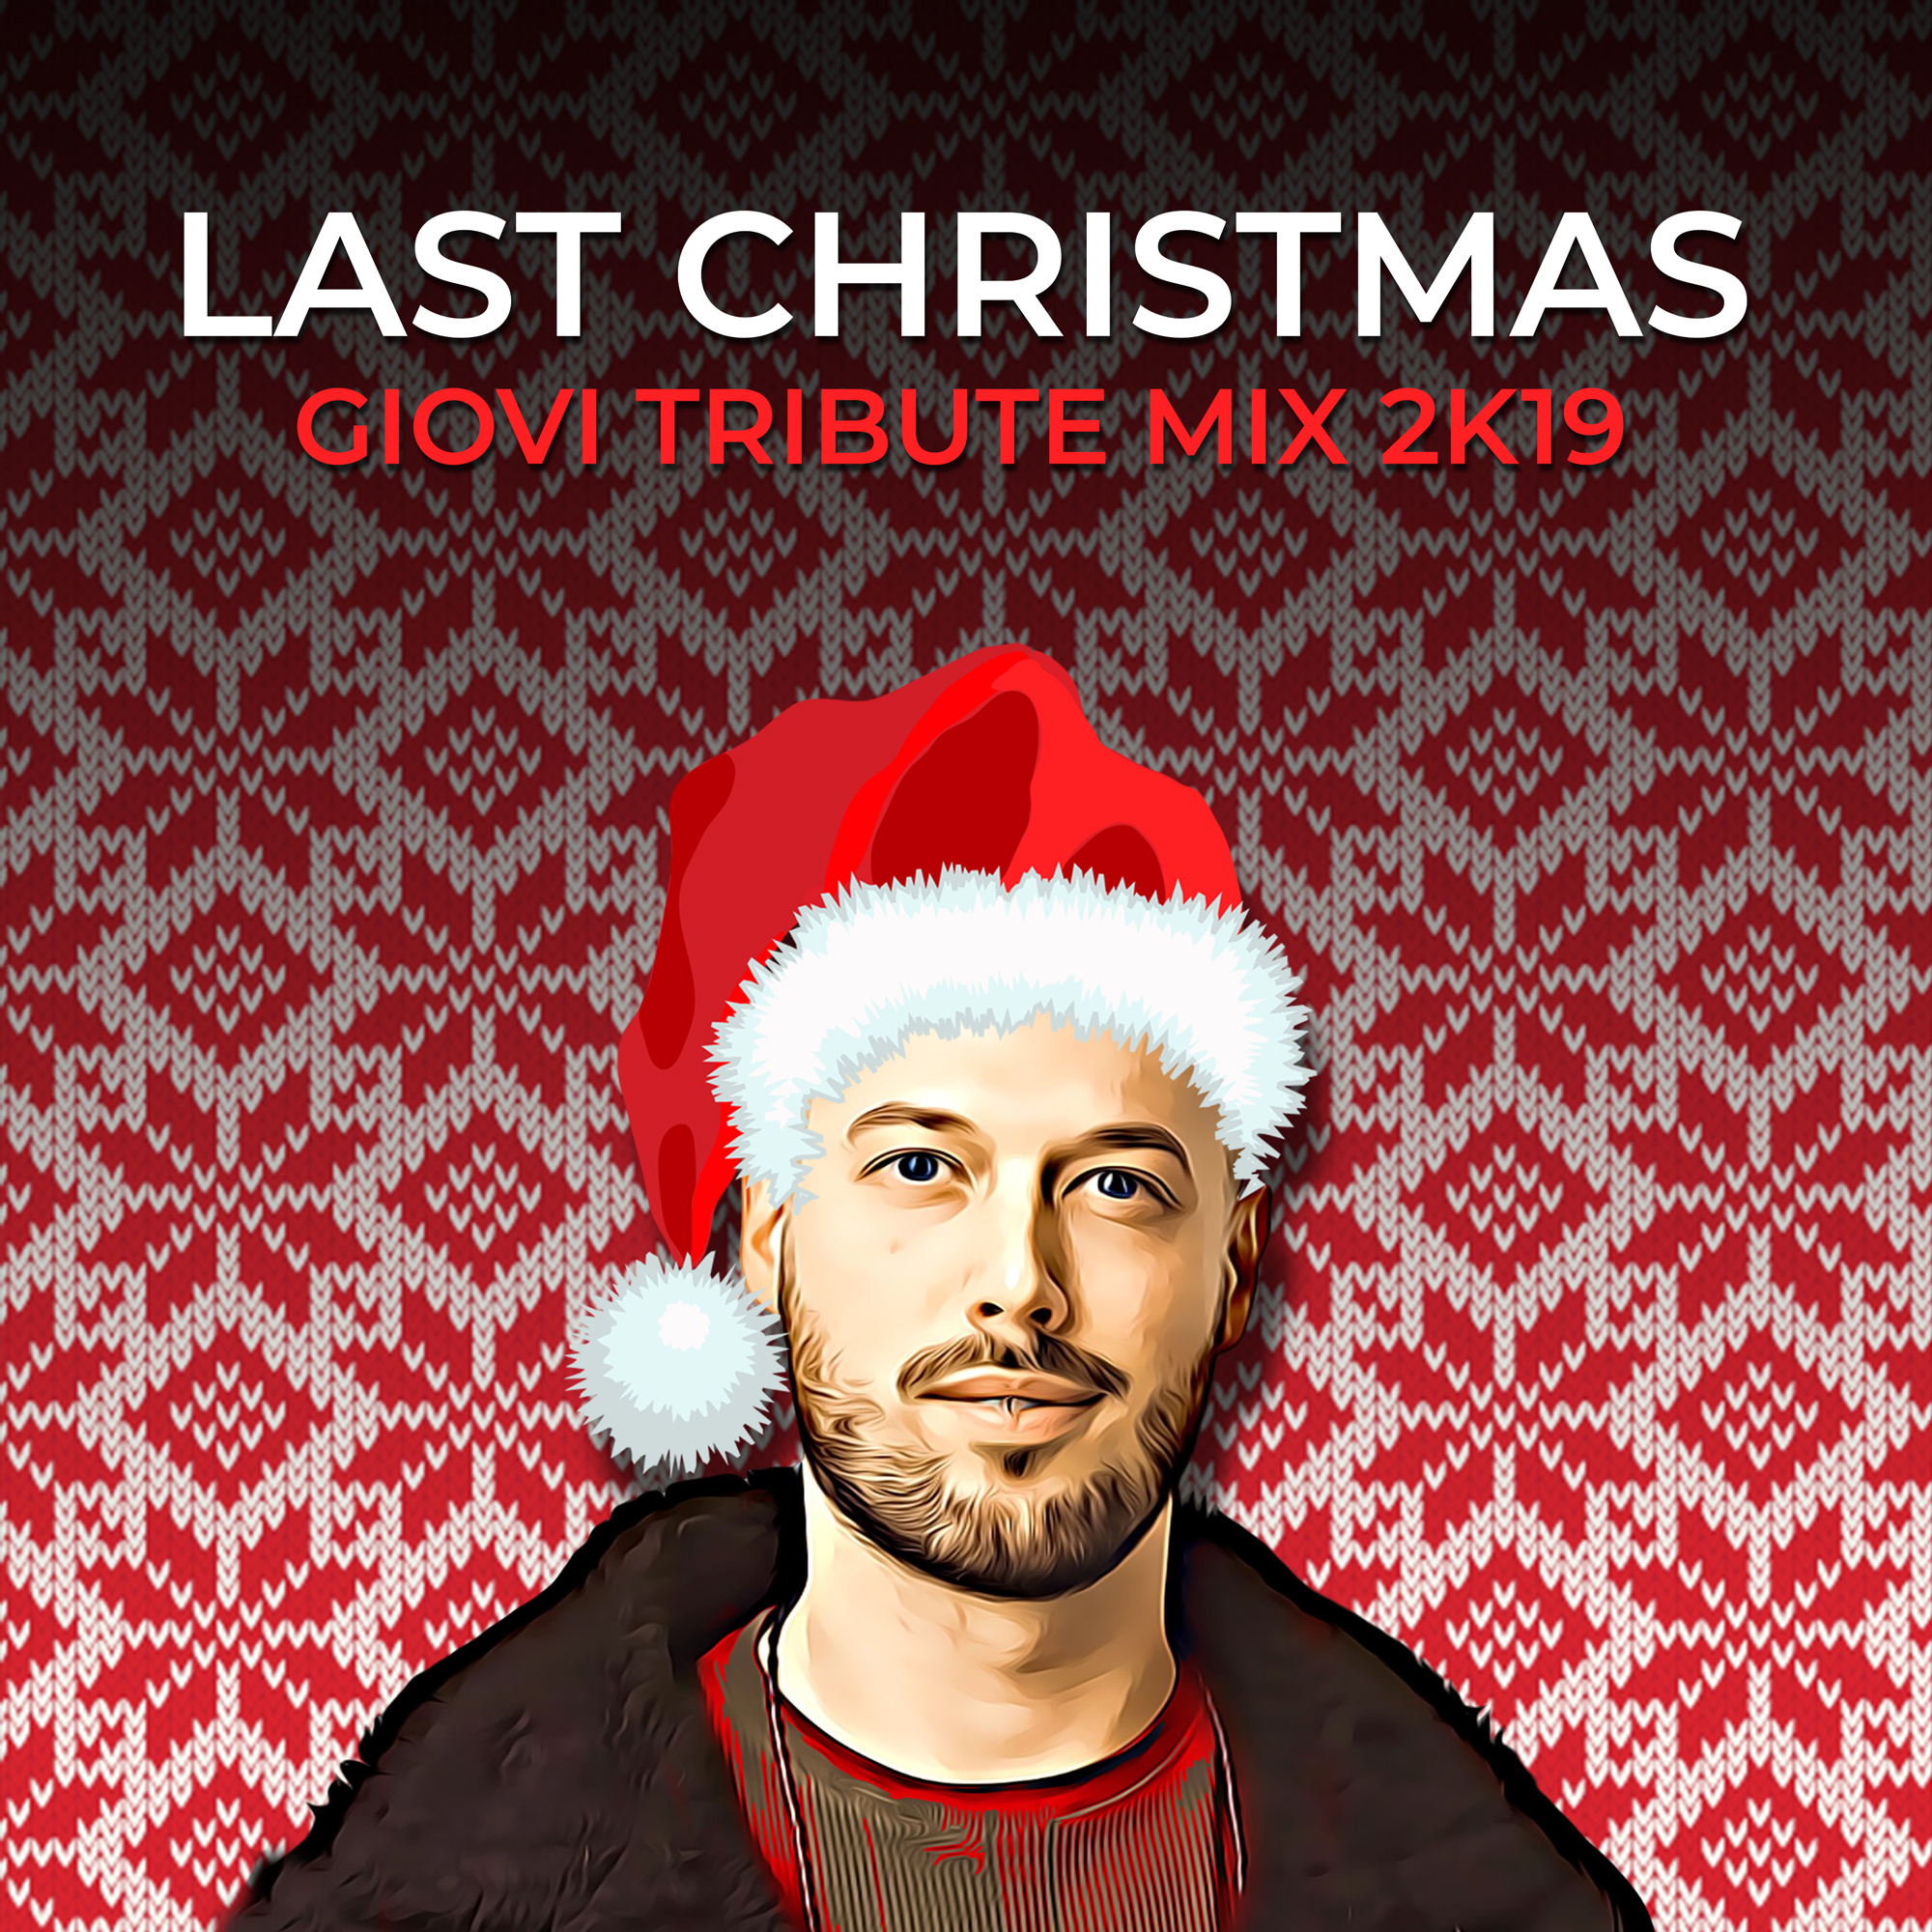 Last Christmas (Giovi Tribute Mix 2k19) by Wham | Free Download on Hypeddit